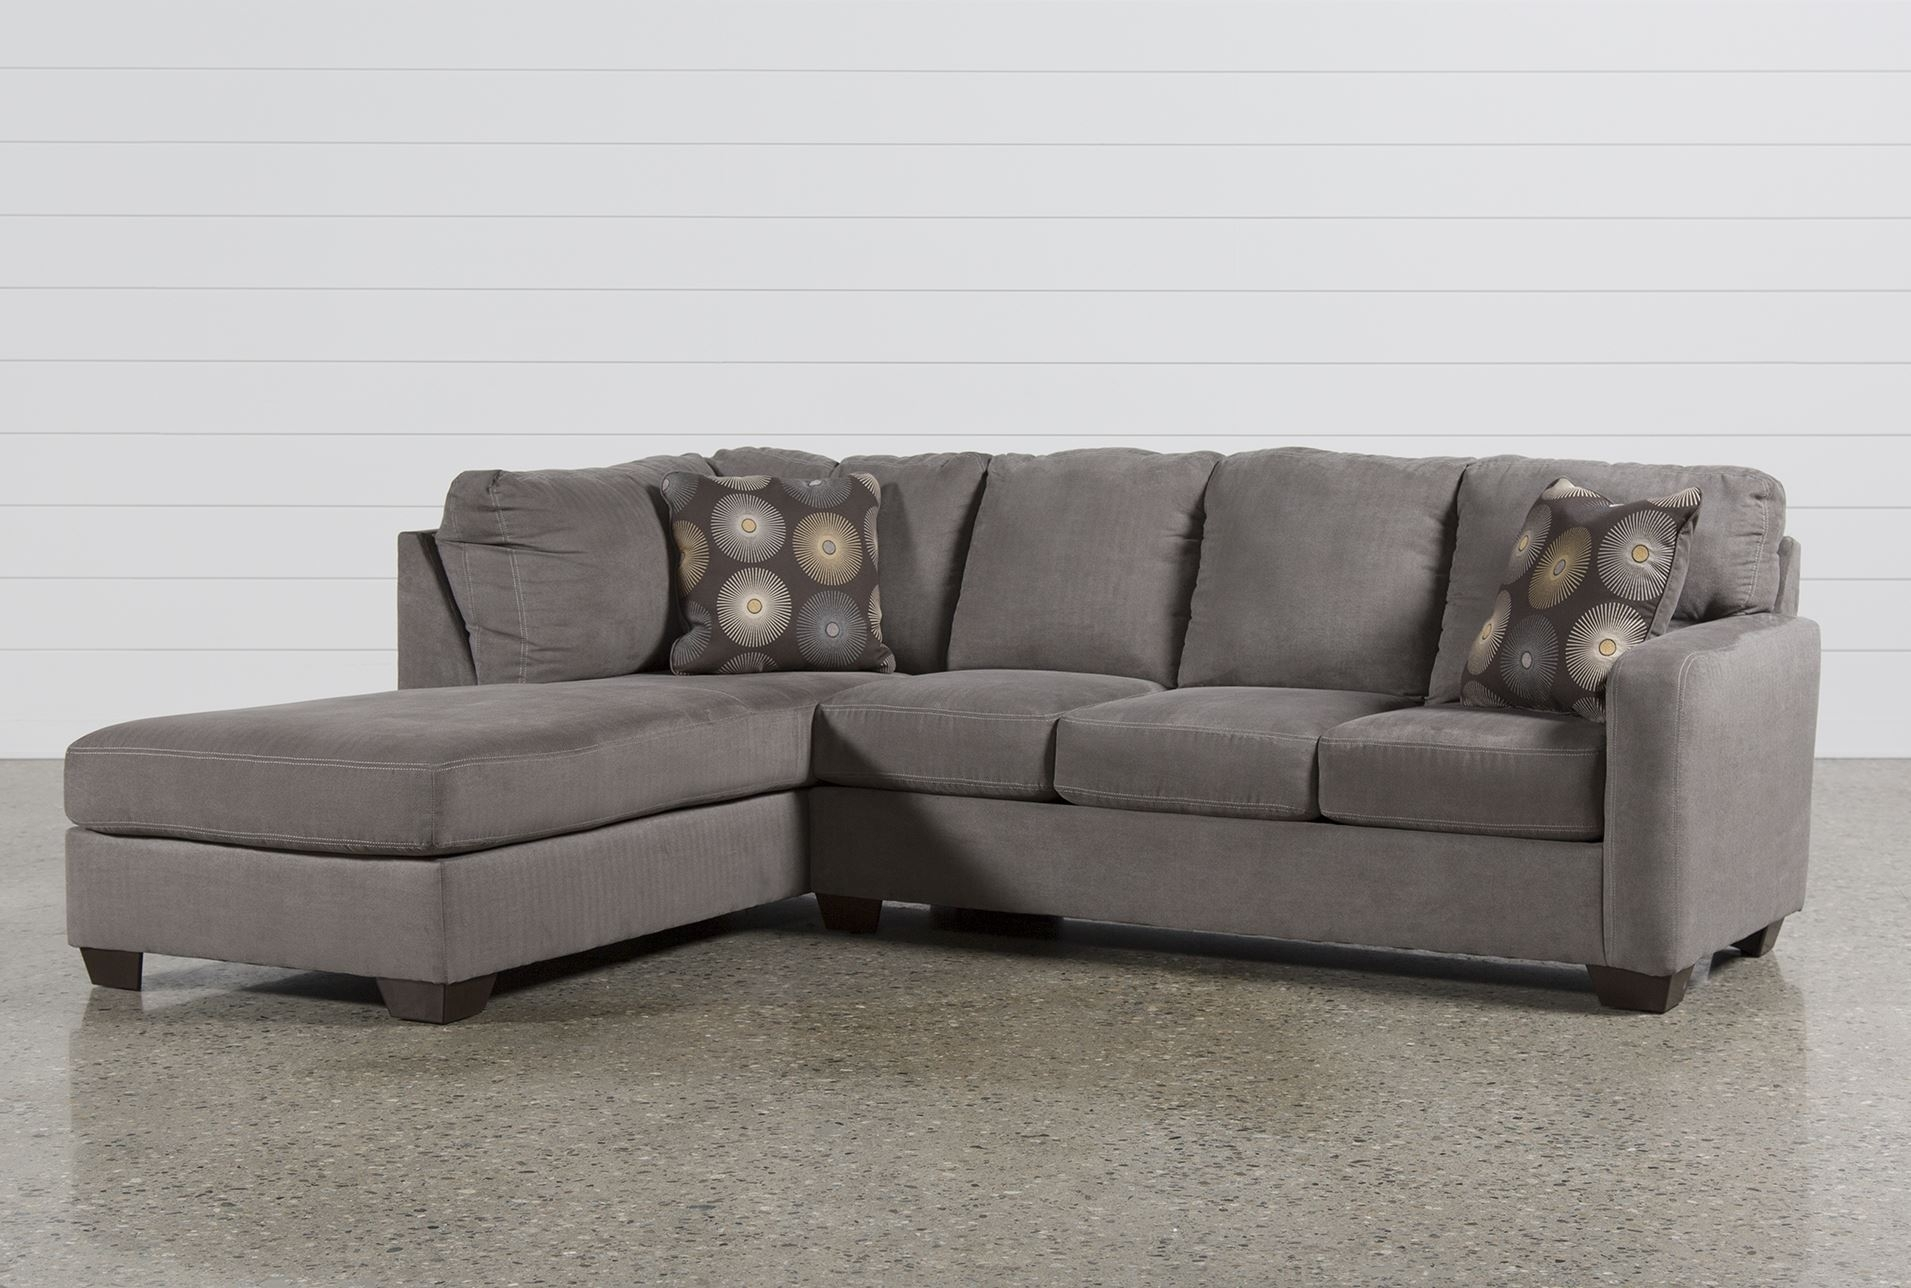 Laf Chaise Sectional Sofa | Baci Living Room For Malbry Point 3 Piece Sectionals With Laf Chaise (Image 19 of 25)